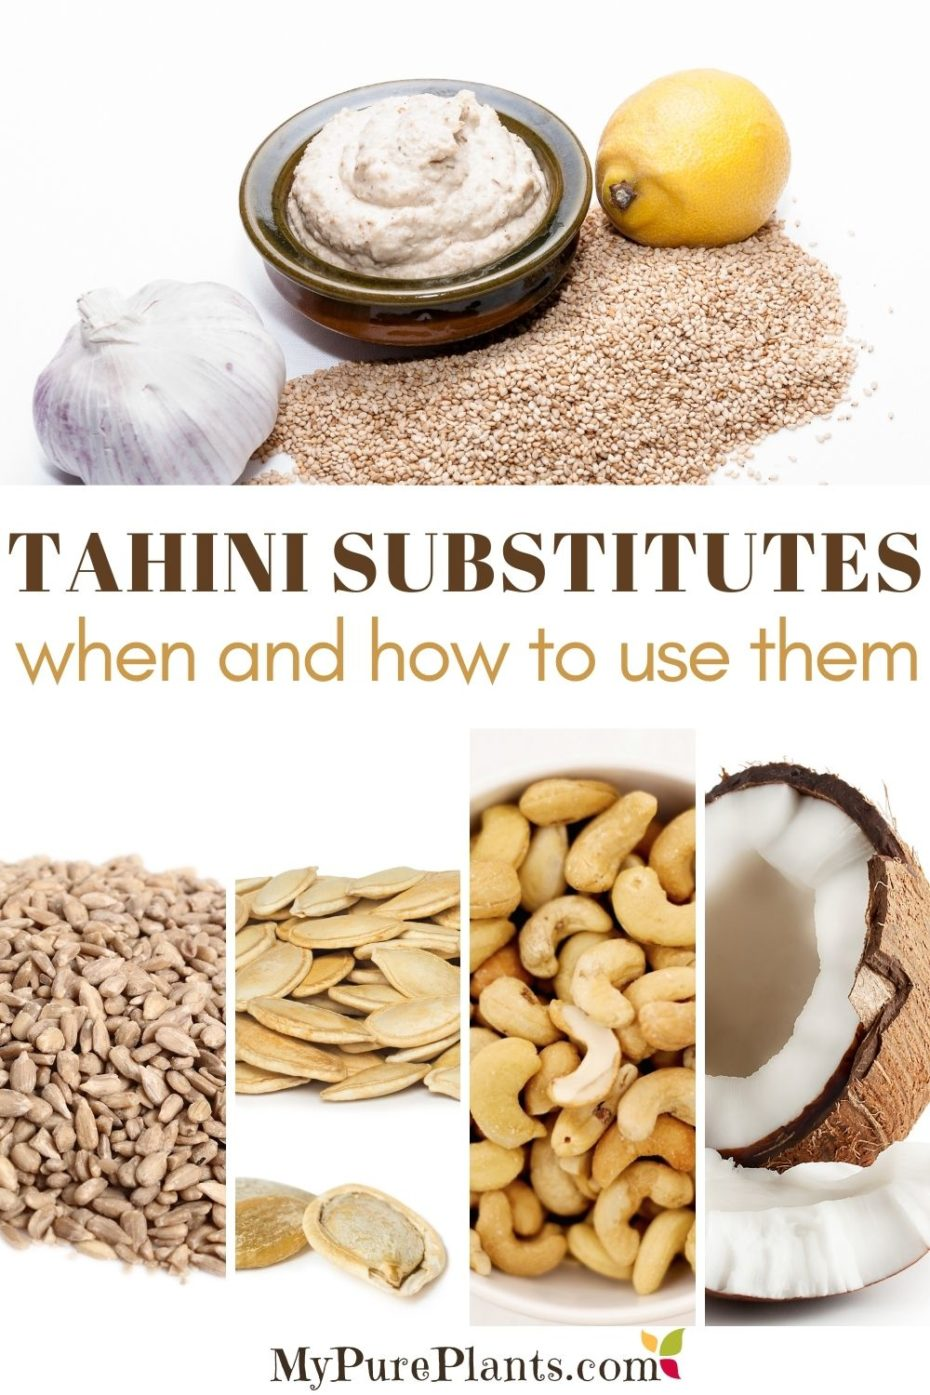 Photo collage of different nuts and seeds with a text in the middle saying tahini substitutes when and how to use them